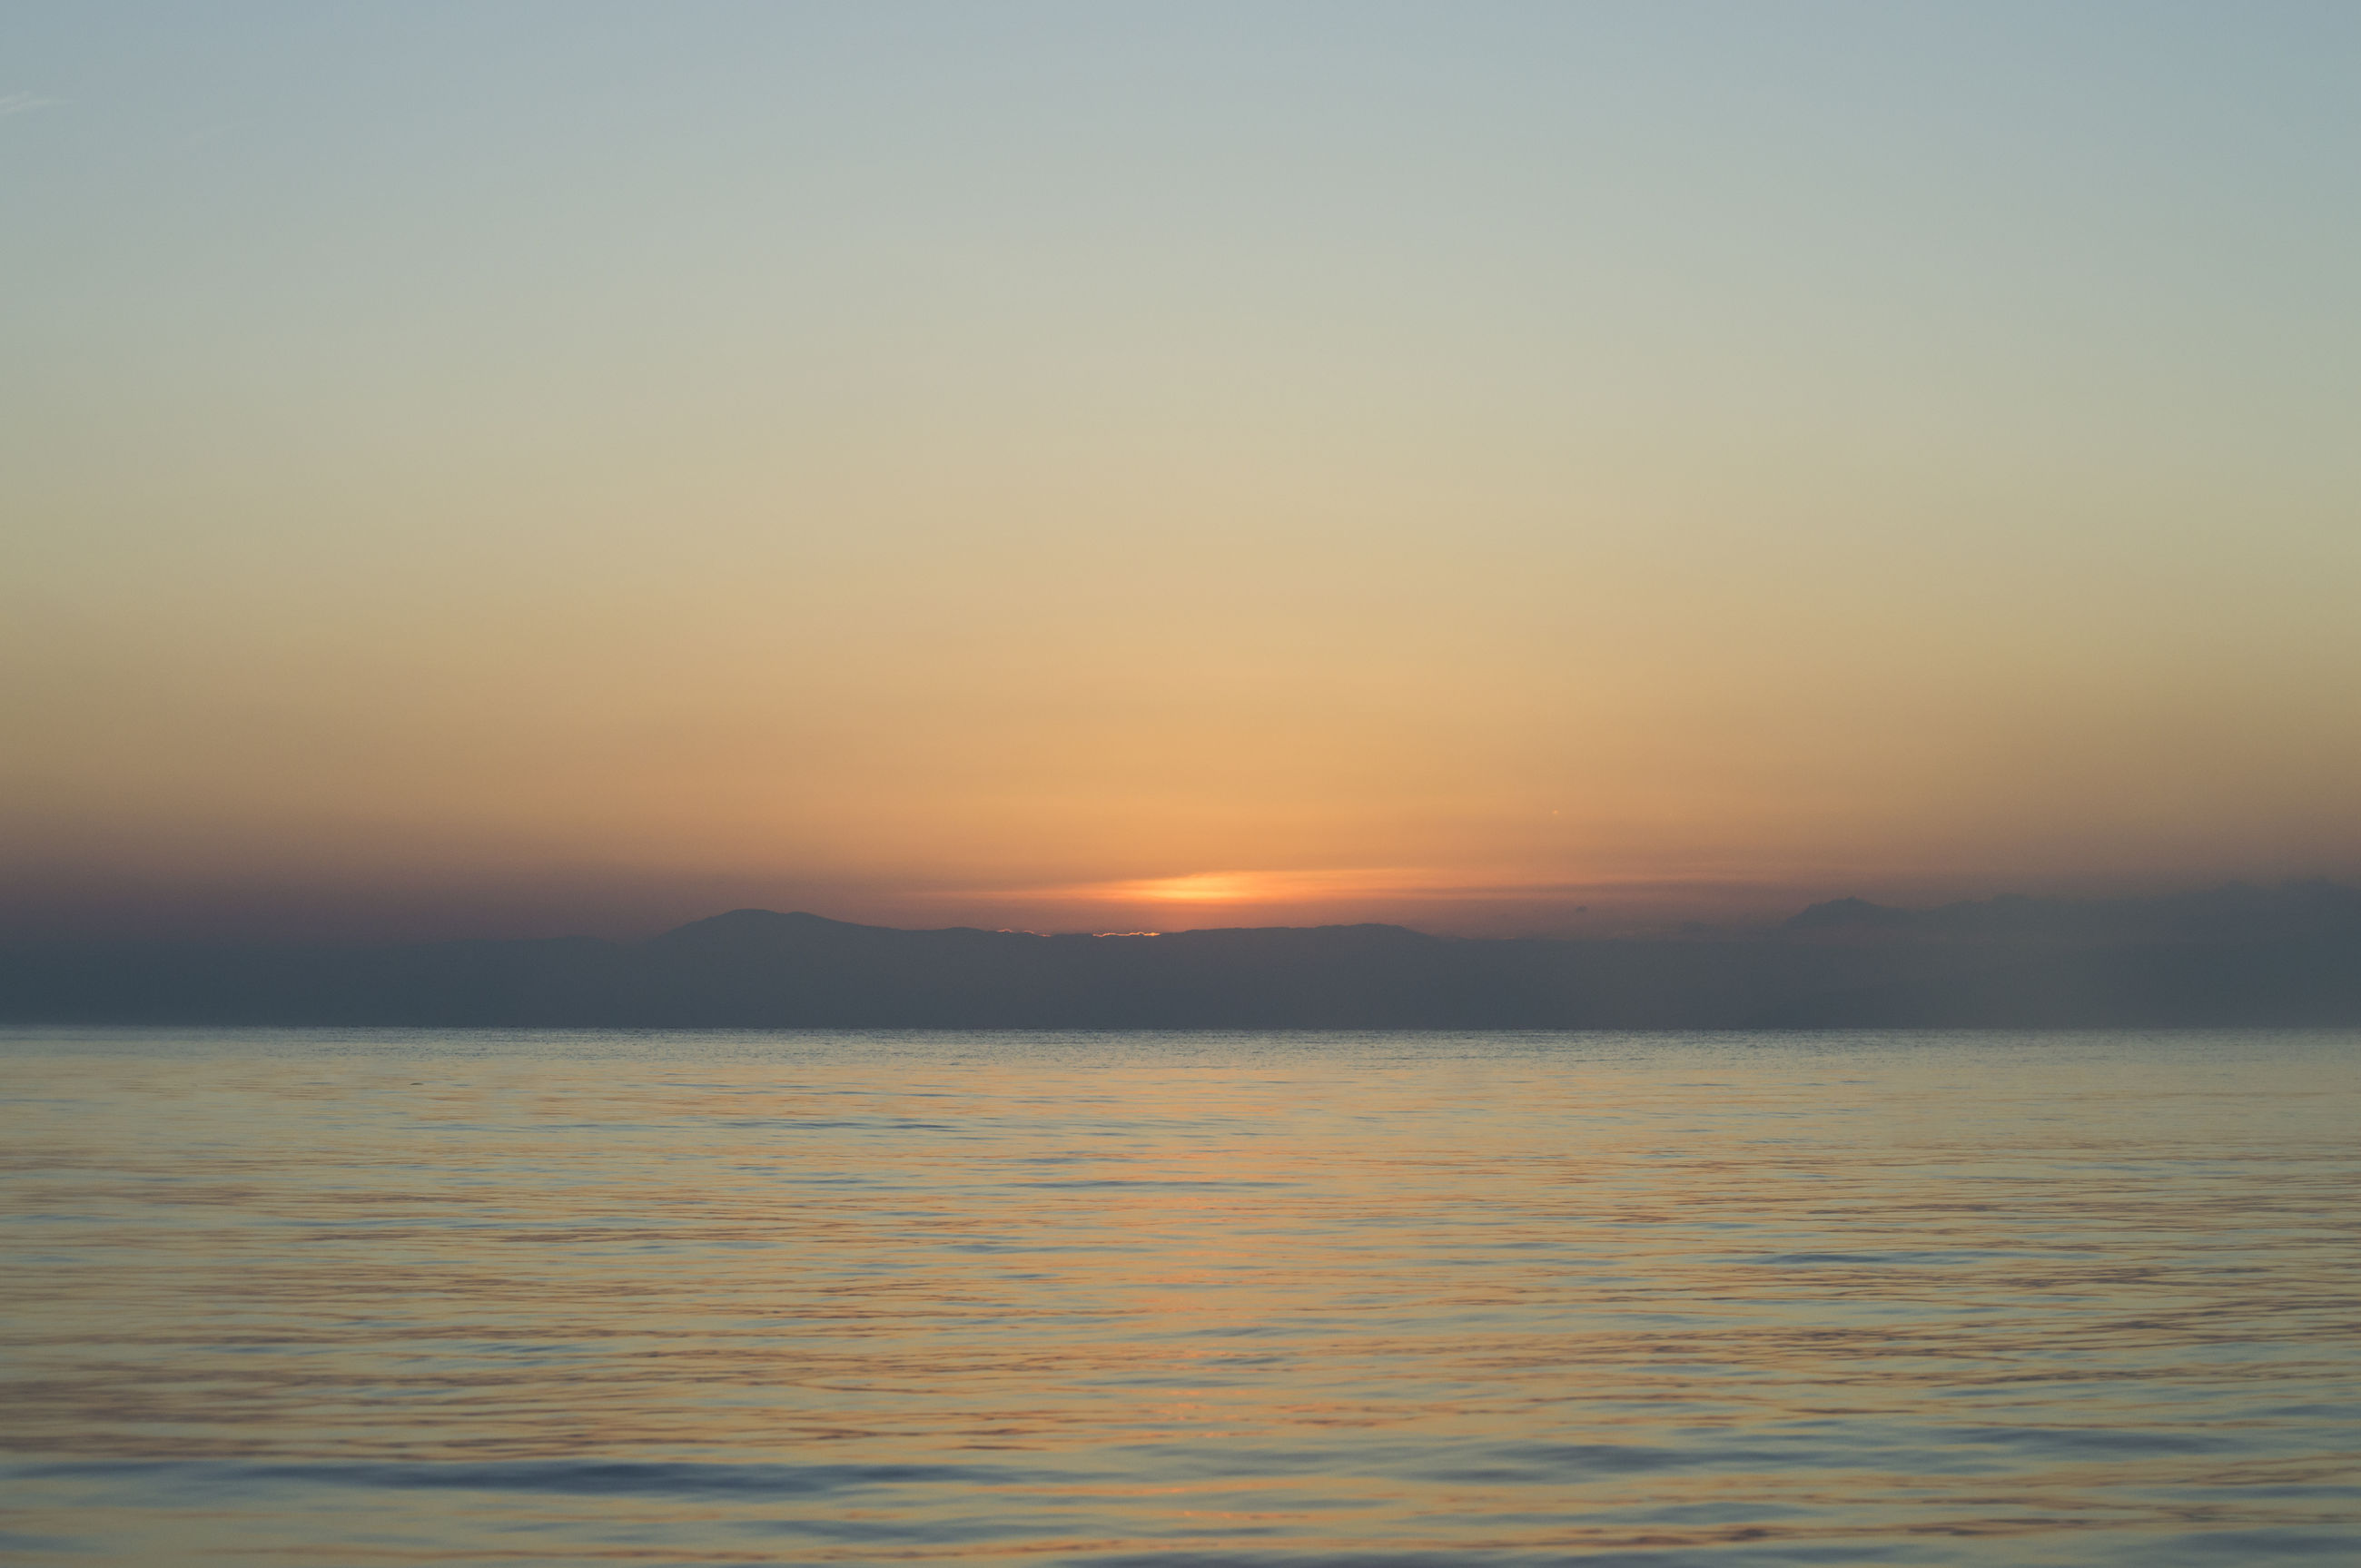 VIEW OF SEA AGAINST SKY DURING SUNSET